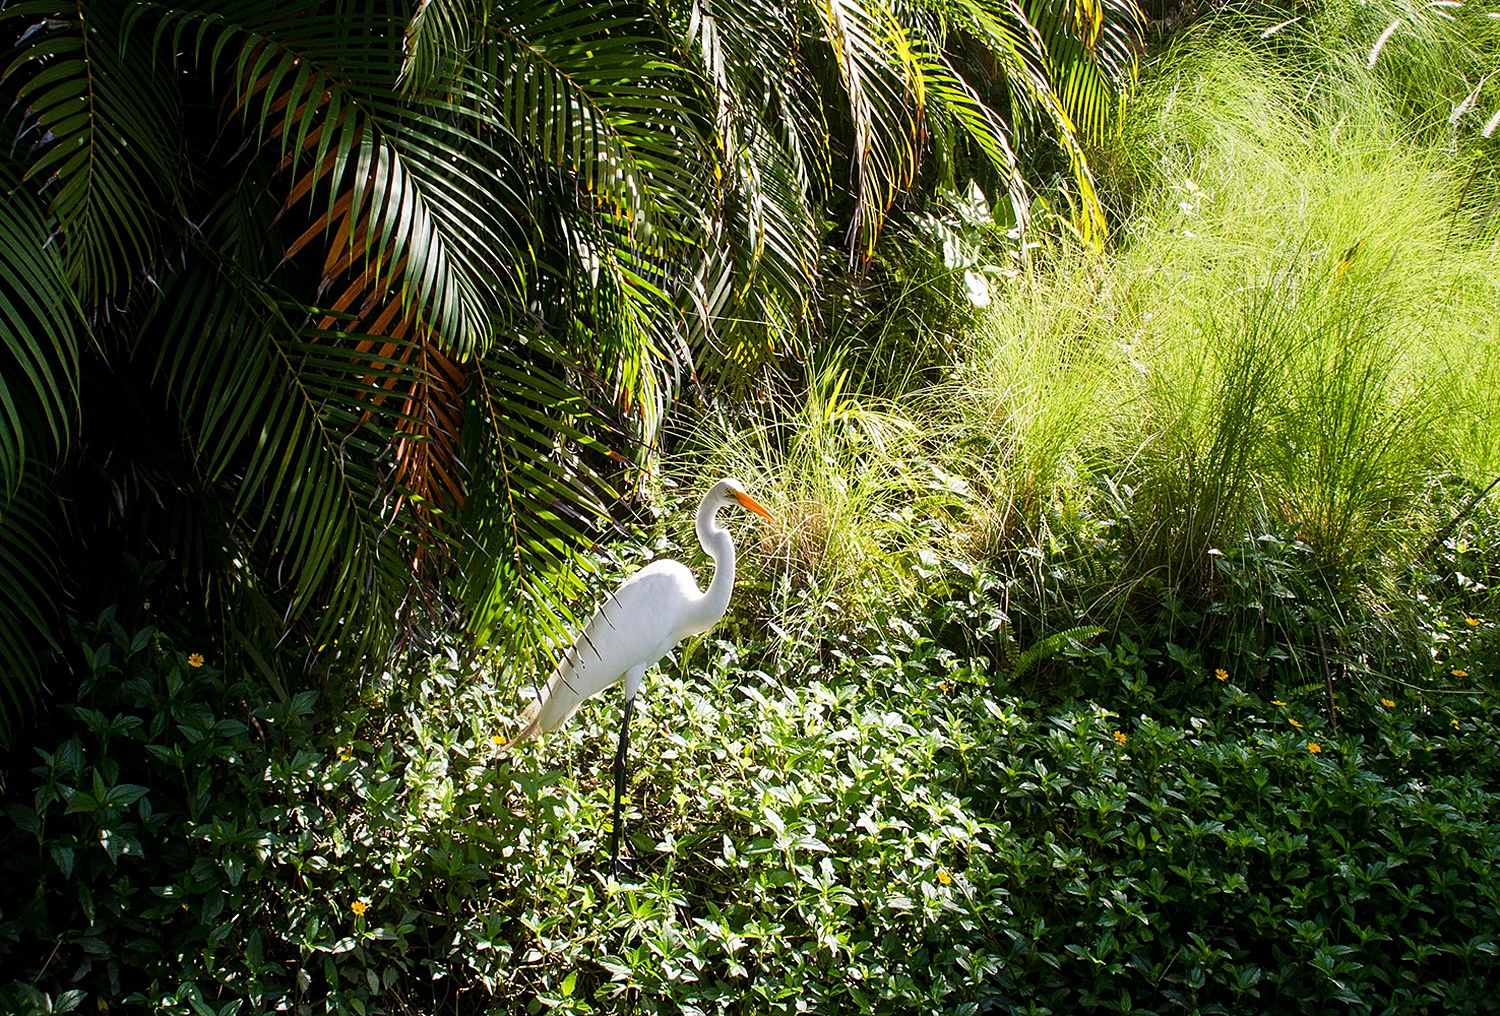 Image: To capture the bird and the landscape surrounding it, we used an aperture of f/9. Other camer...